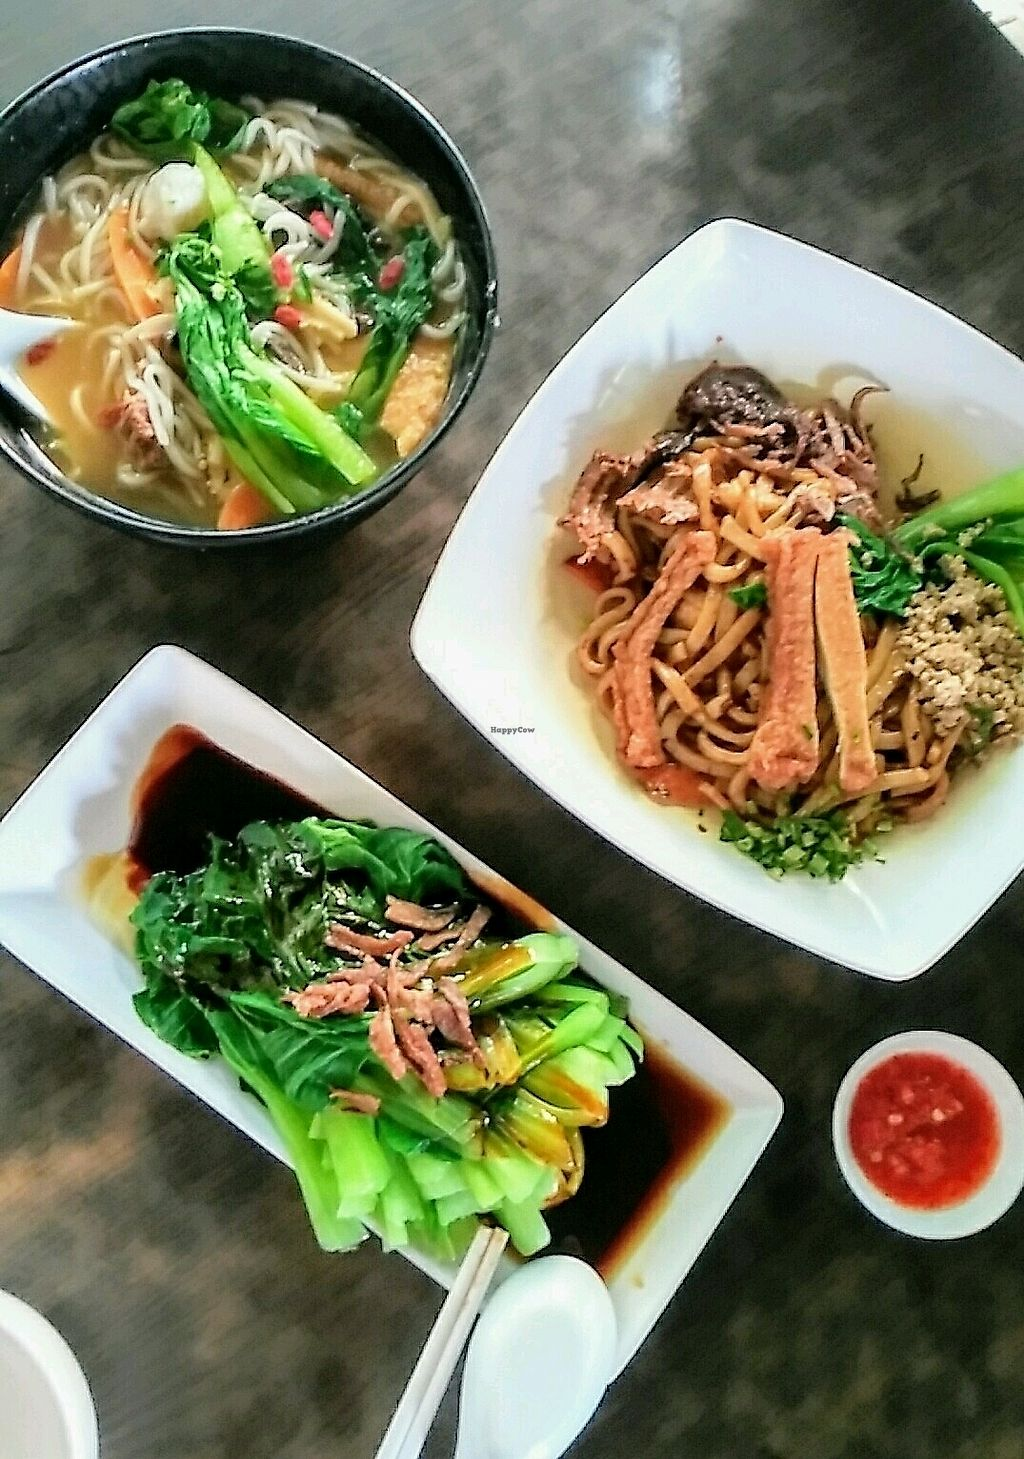 """Photo of Rice House  by <a href=""""/members/profile/taro1000"""">taro1000</a> <br/>energy noodle soup, basil mushroom noodle & green veg <br/> January 27, 2018  - <a href='/contact/abuse/image/9109/351392'>Report</a>"""